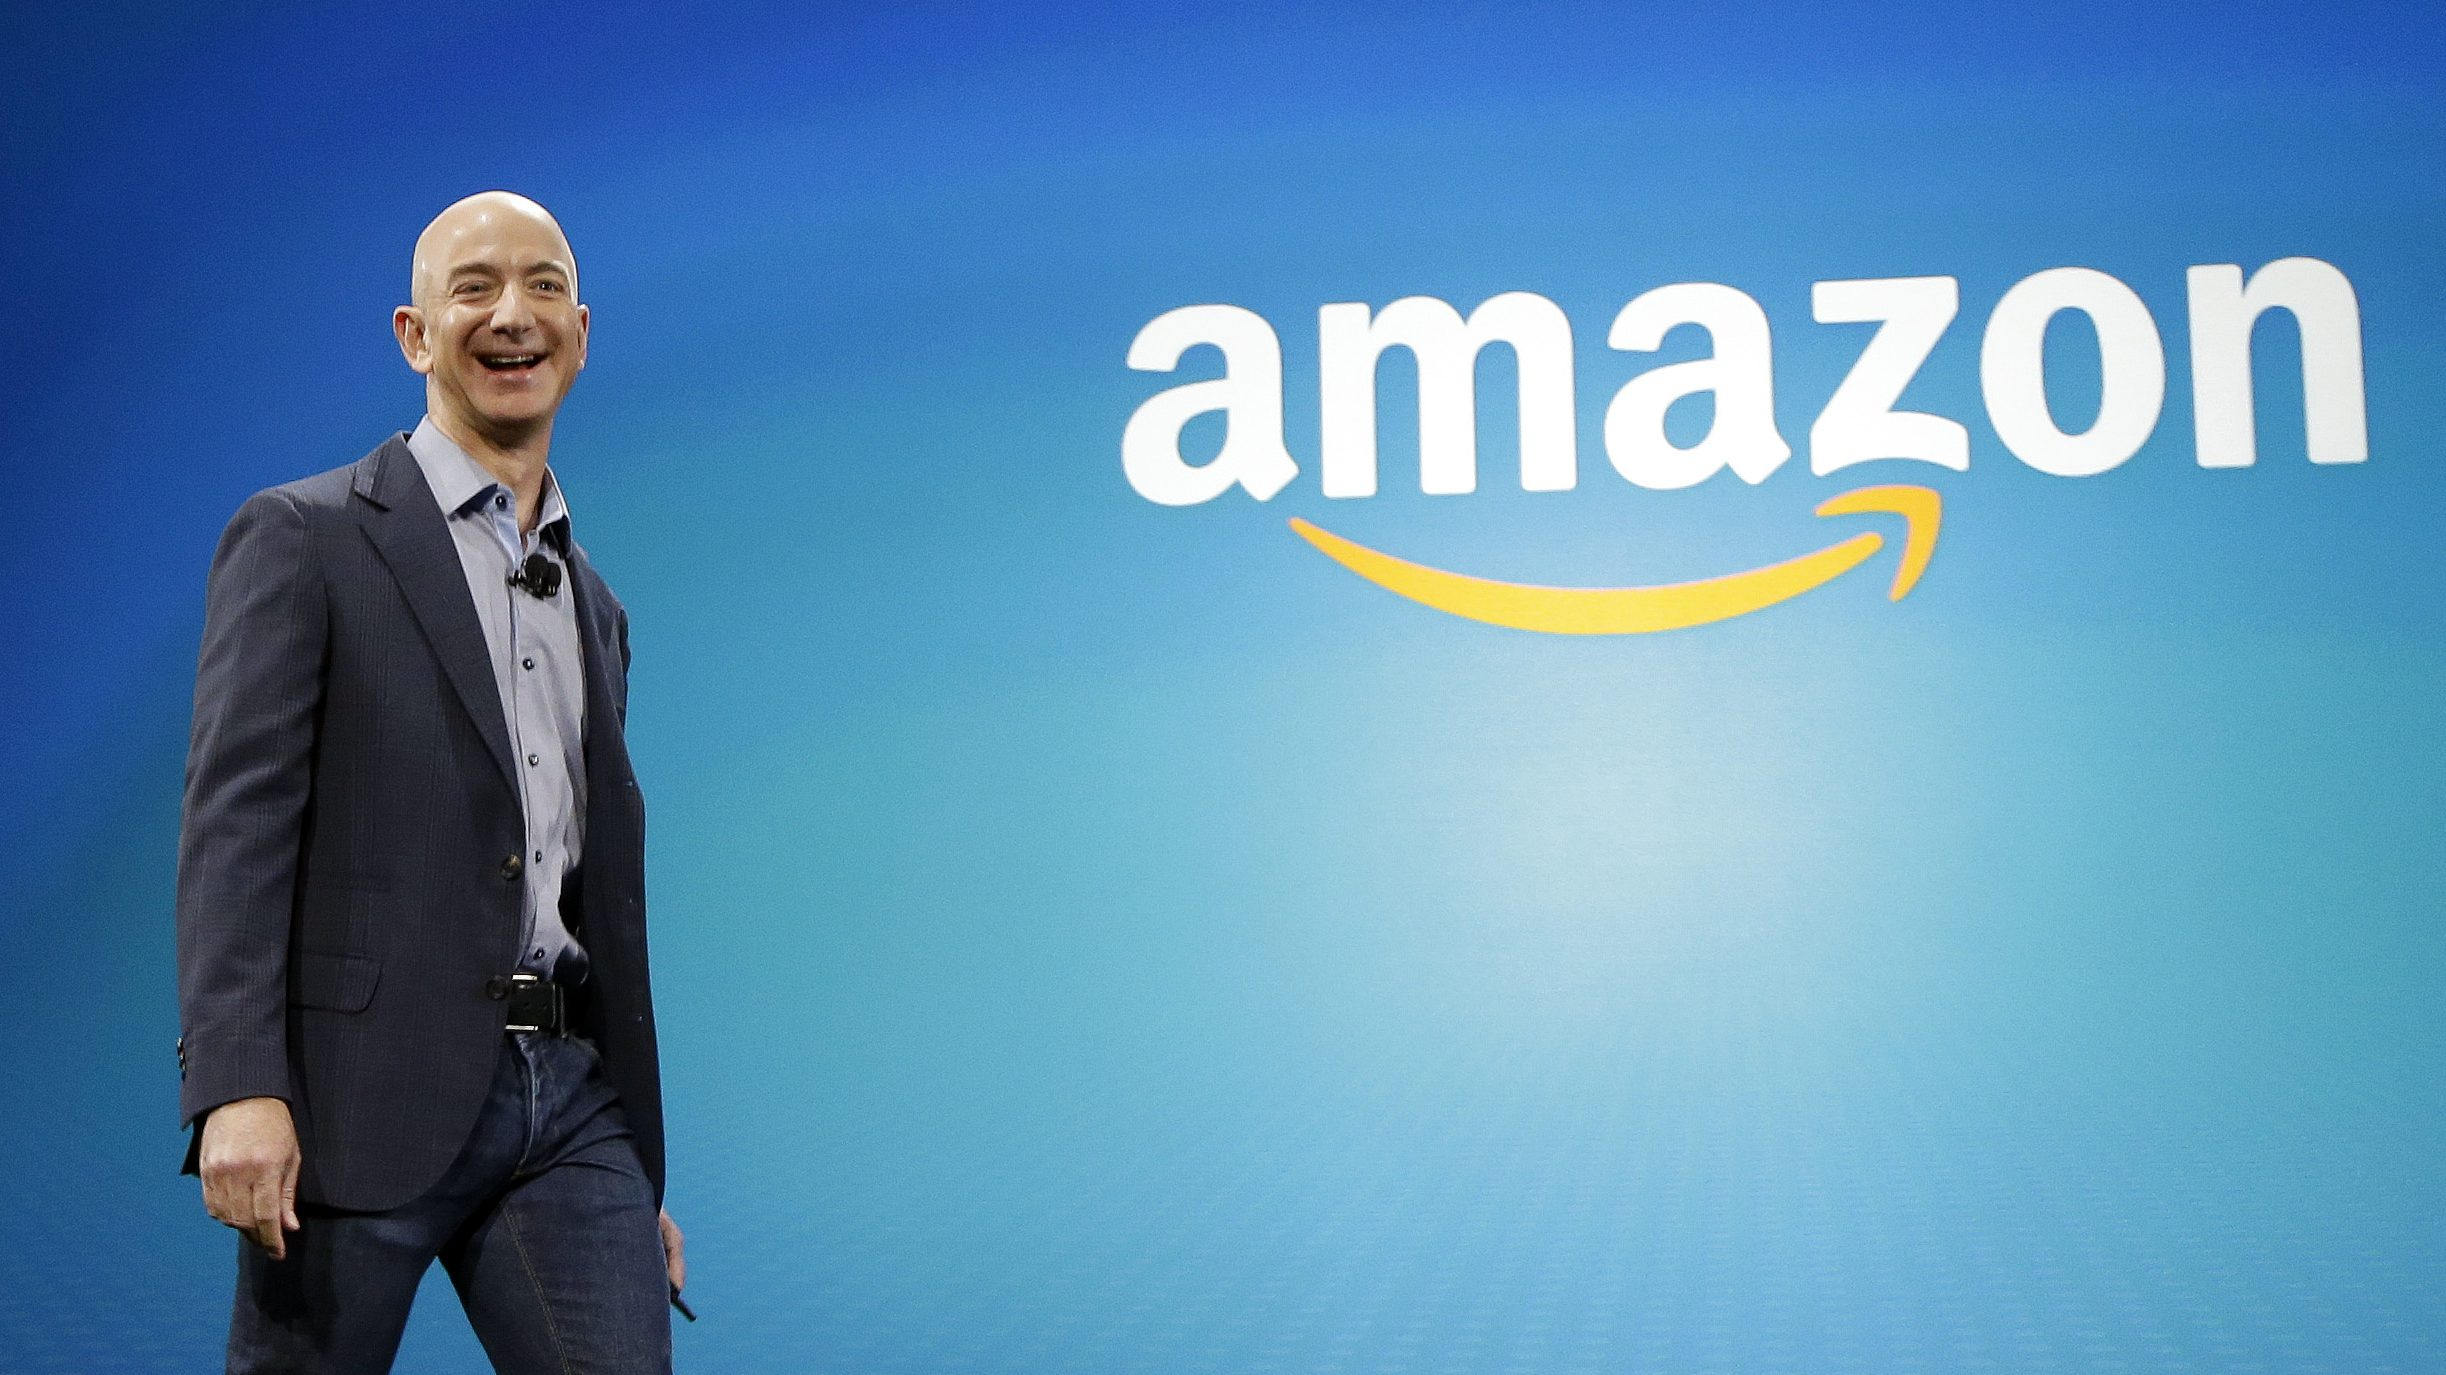 FILE - In this June 16, 2014, file photo, Amazon CEO Jeff Bezos walks onstage for the launch of the new Amazon Fire Phone, in Seattle. Bezos offered a glimpse of his vision for the future during an interview on May 31, 2016, at the Code Conference in Rancho Palos Verdes, Calif.